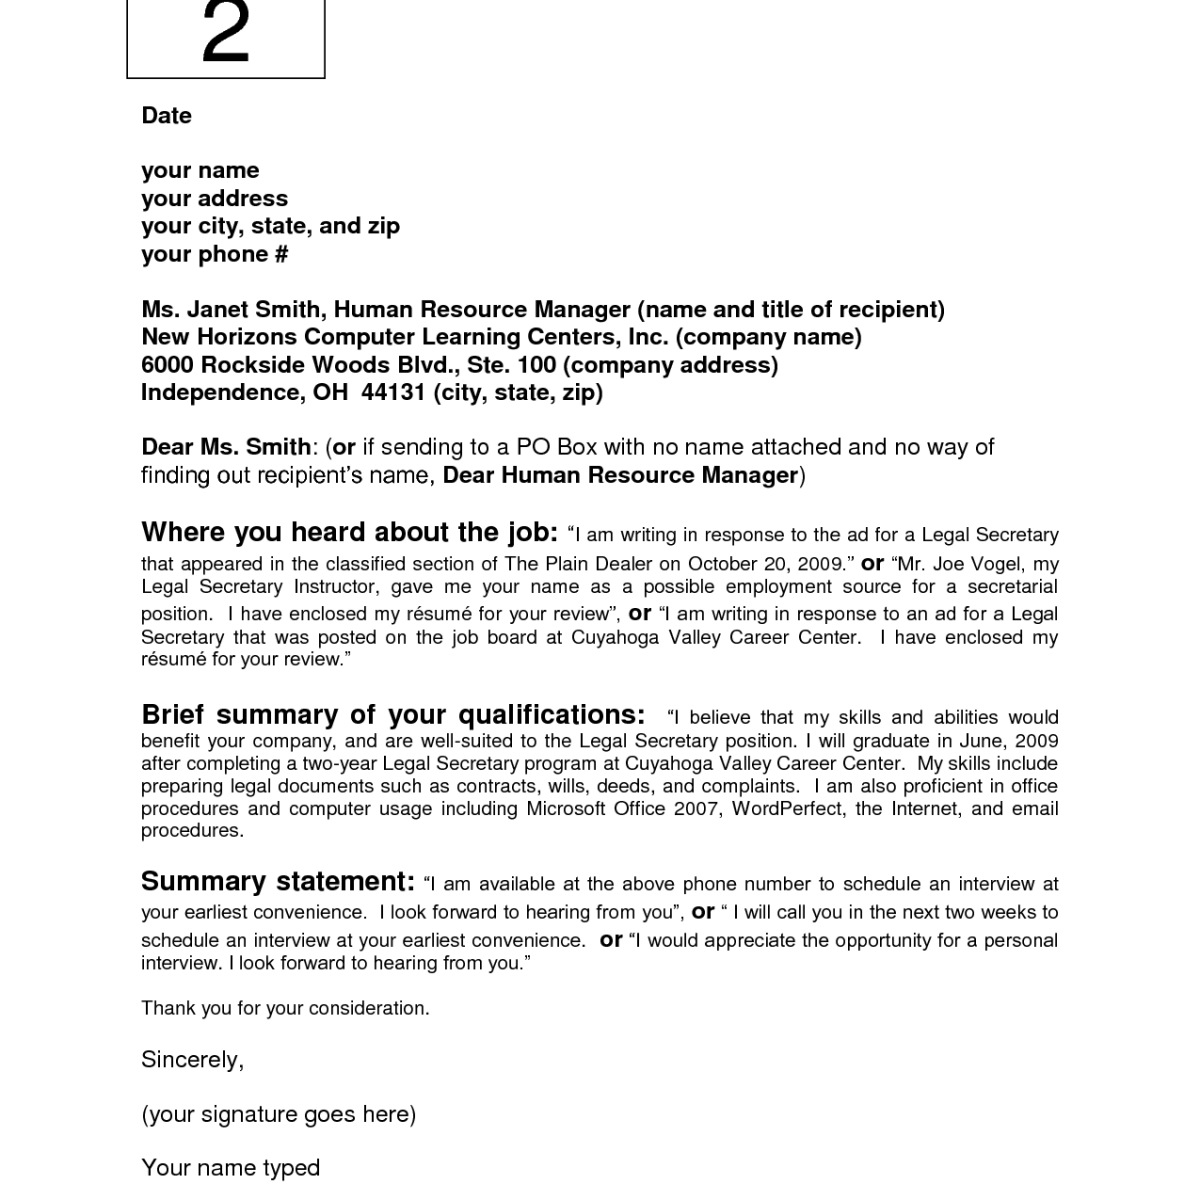 cover letter template no recipient name